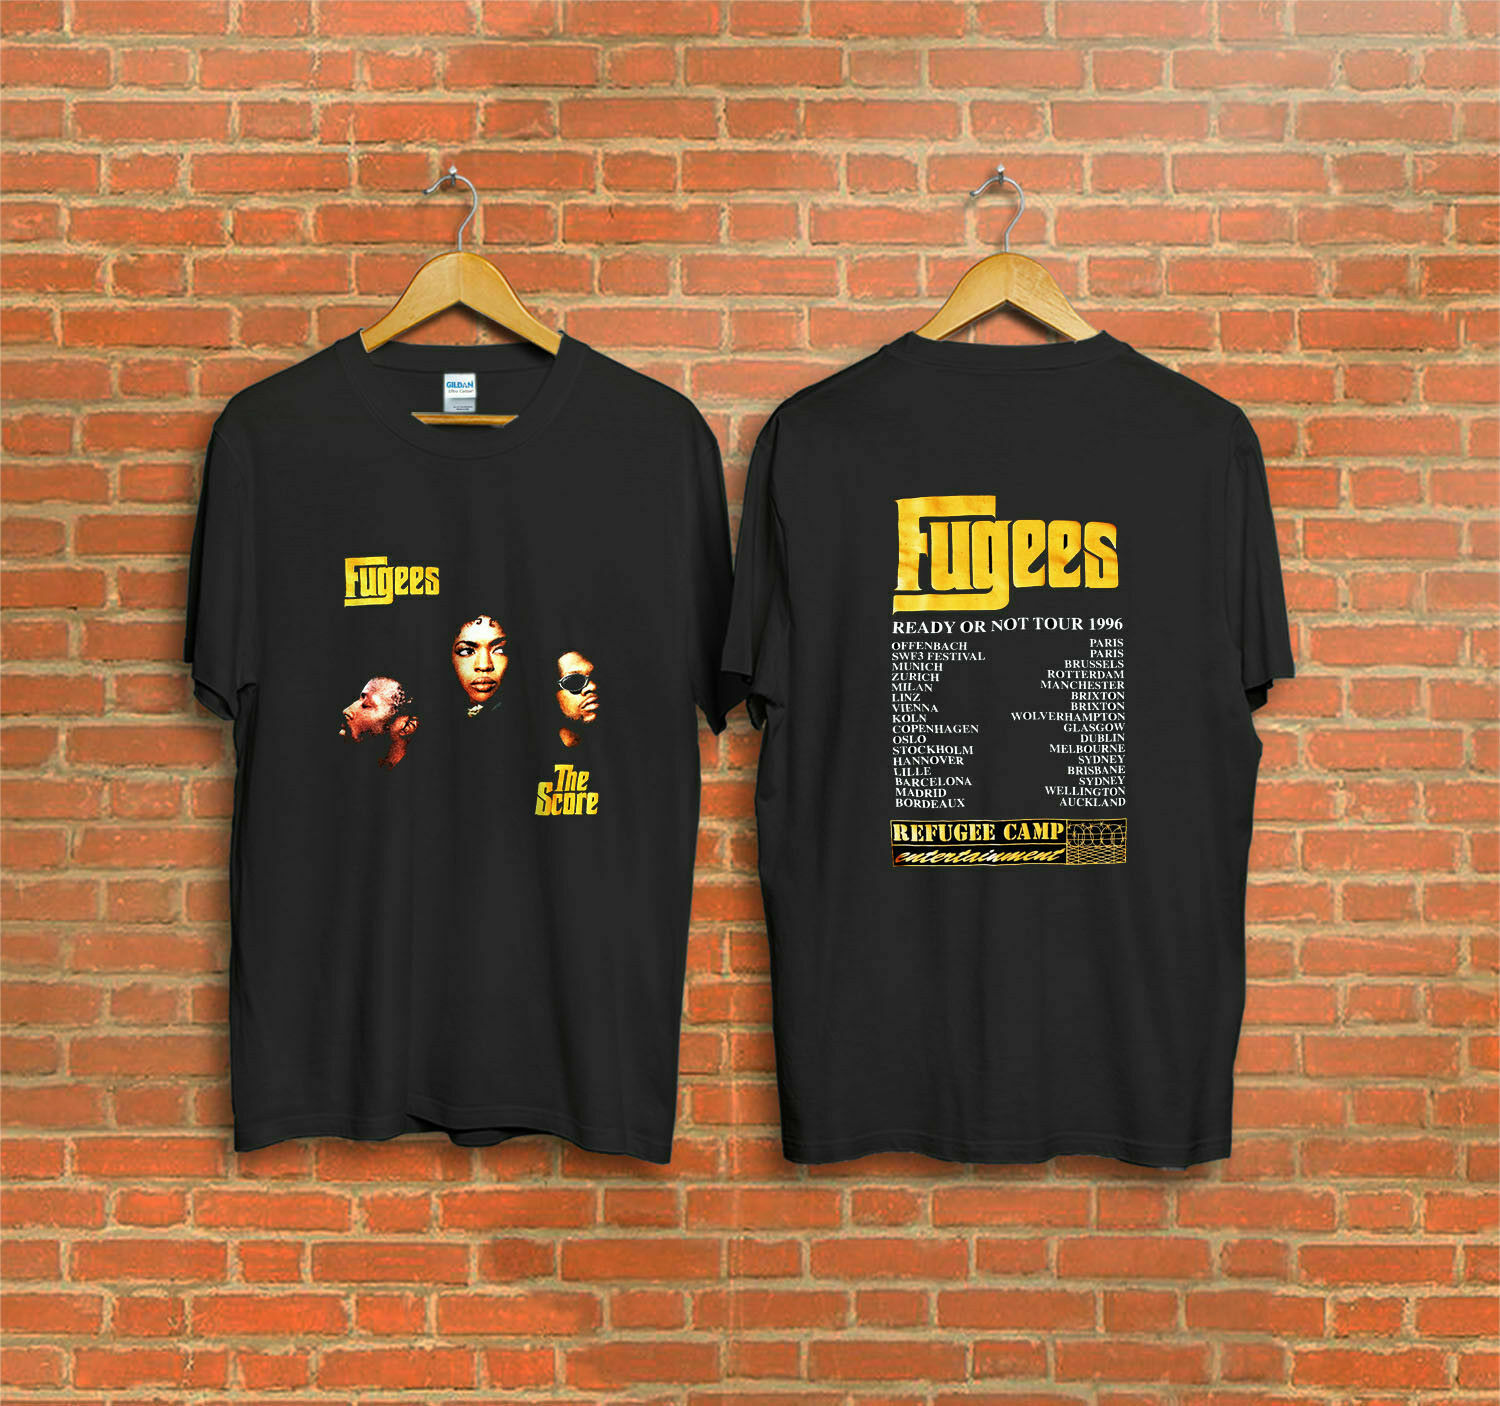 Vintage 1996 Fugees The Score Ready or Not Concert Tour   T  -  Shirt   Reprint 2018 Summer Men'S Brand Clothing O-Neck   T     Shirt